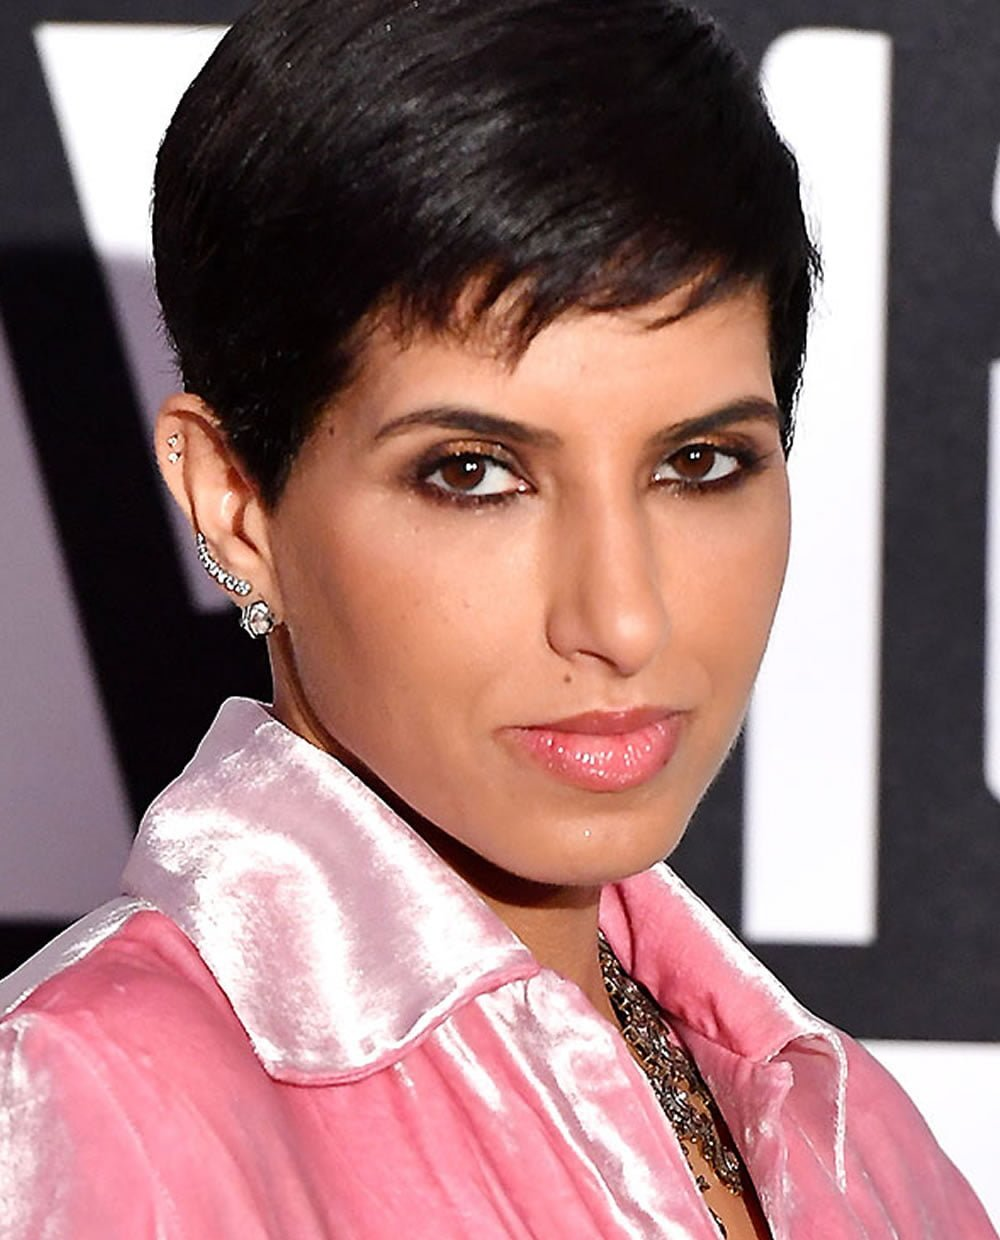 Pixie Cut 2019 Short Haircut Inspirations You Absolutely